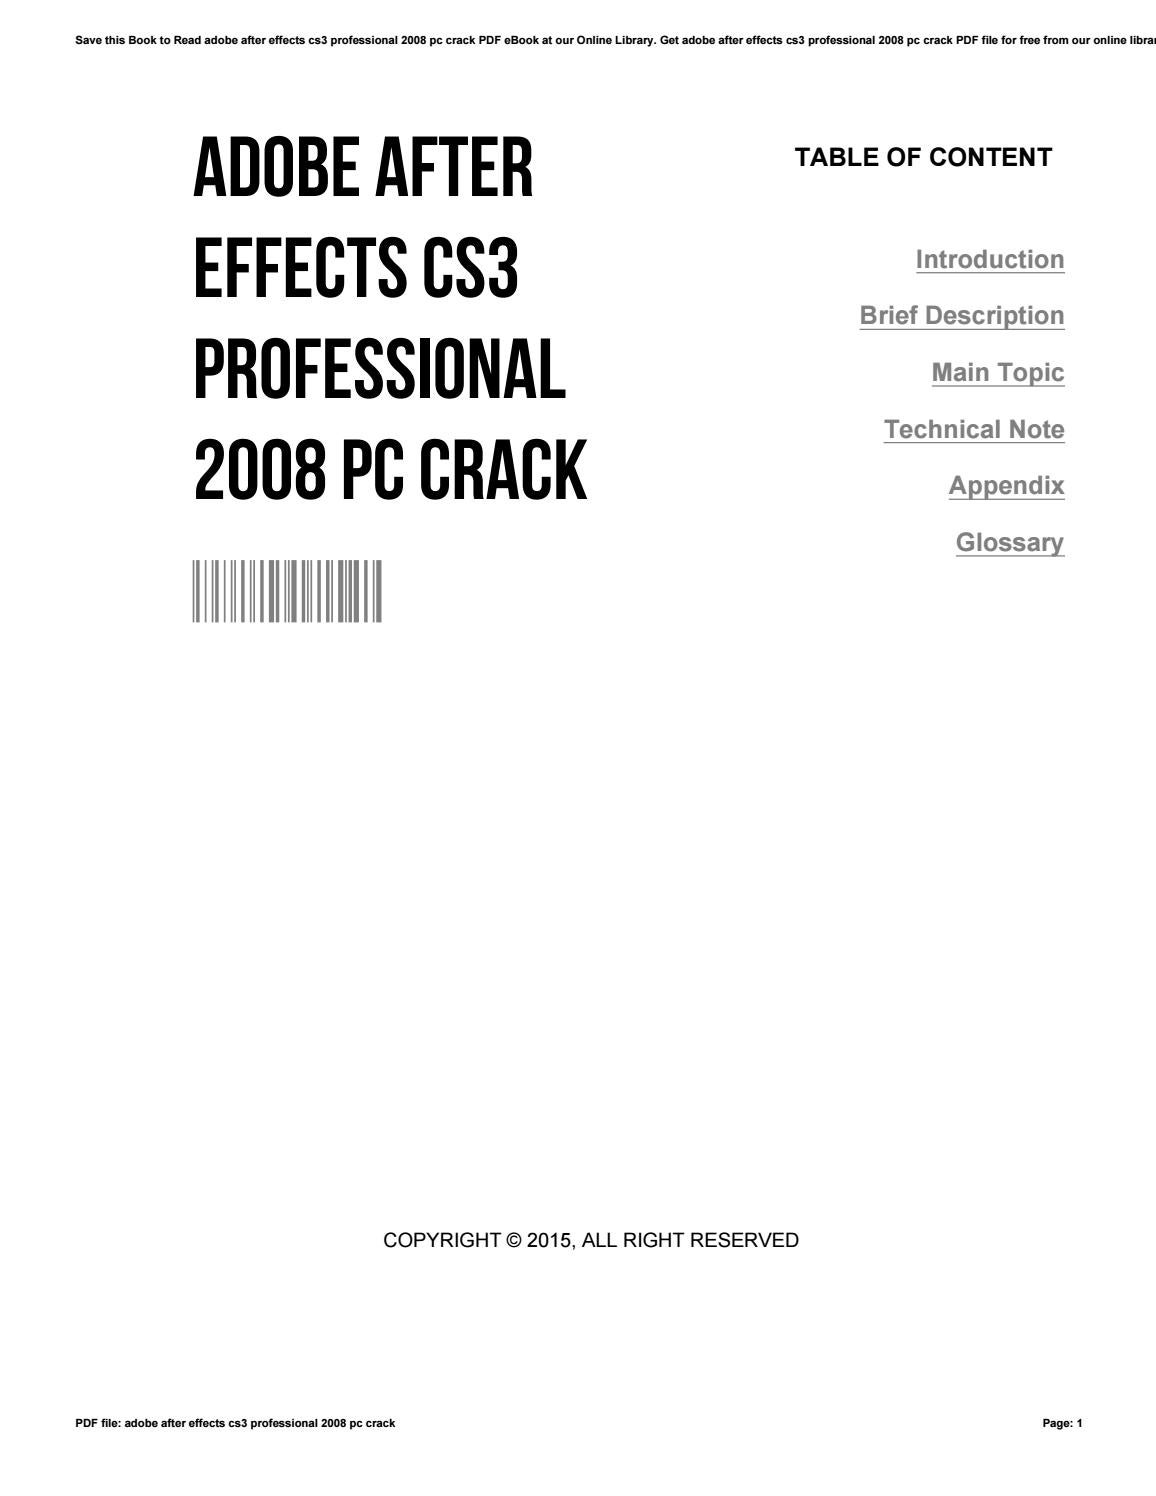 Adobe after effects cs3 professional 2008 pc crack by